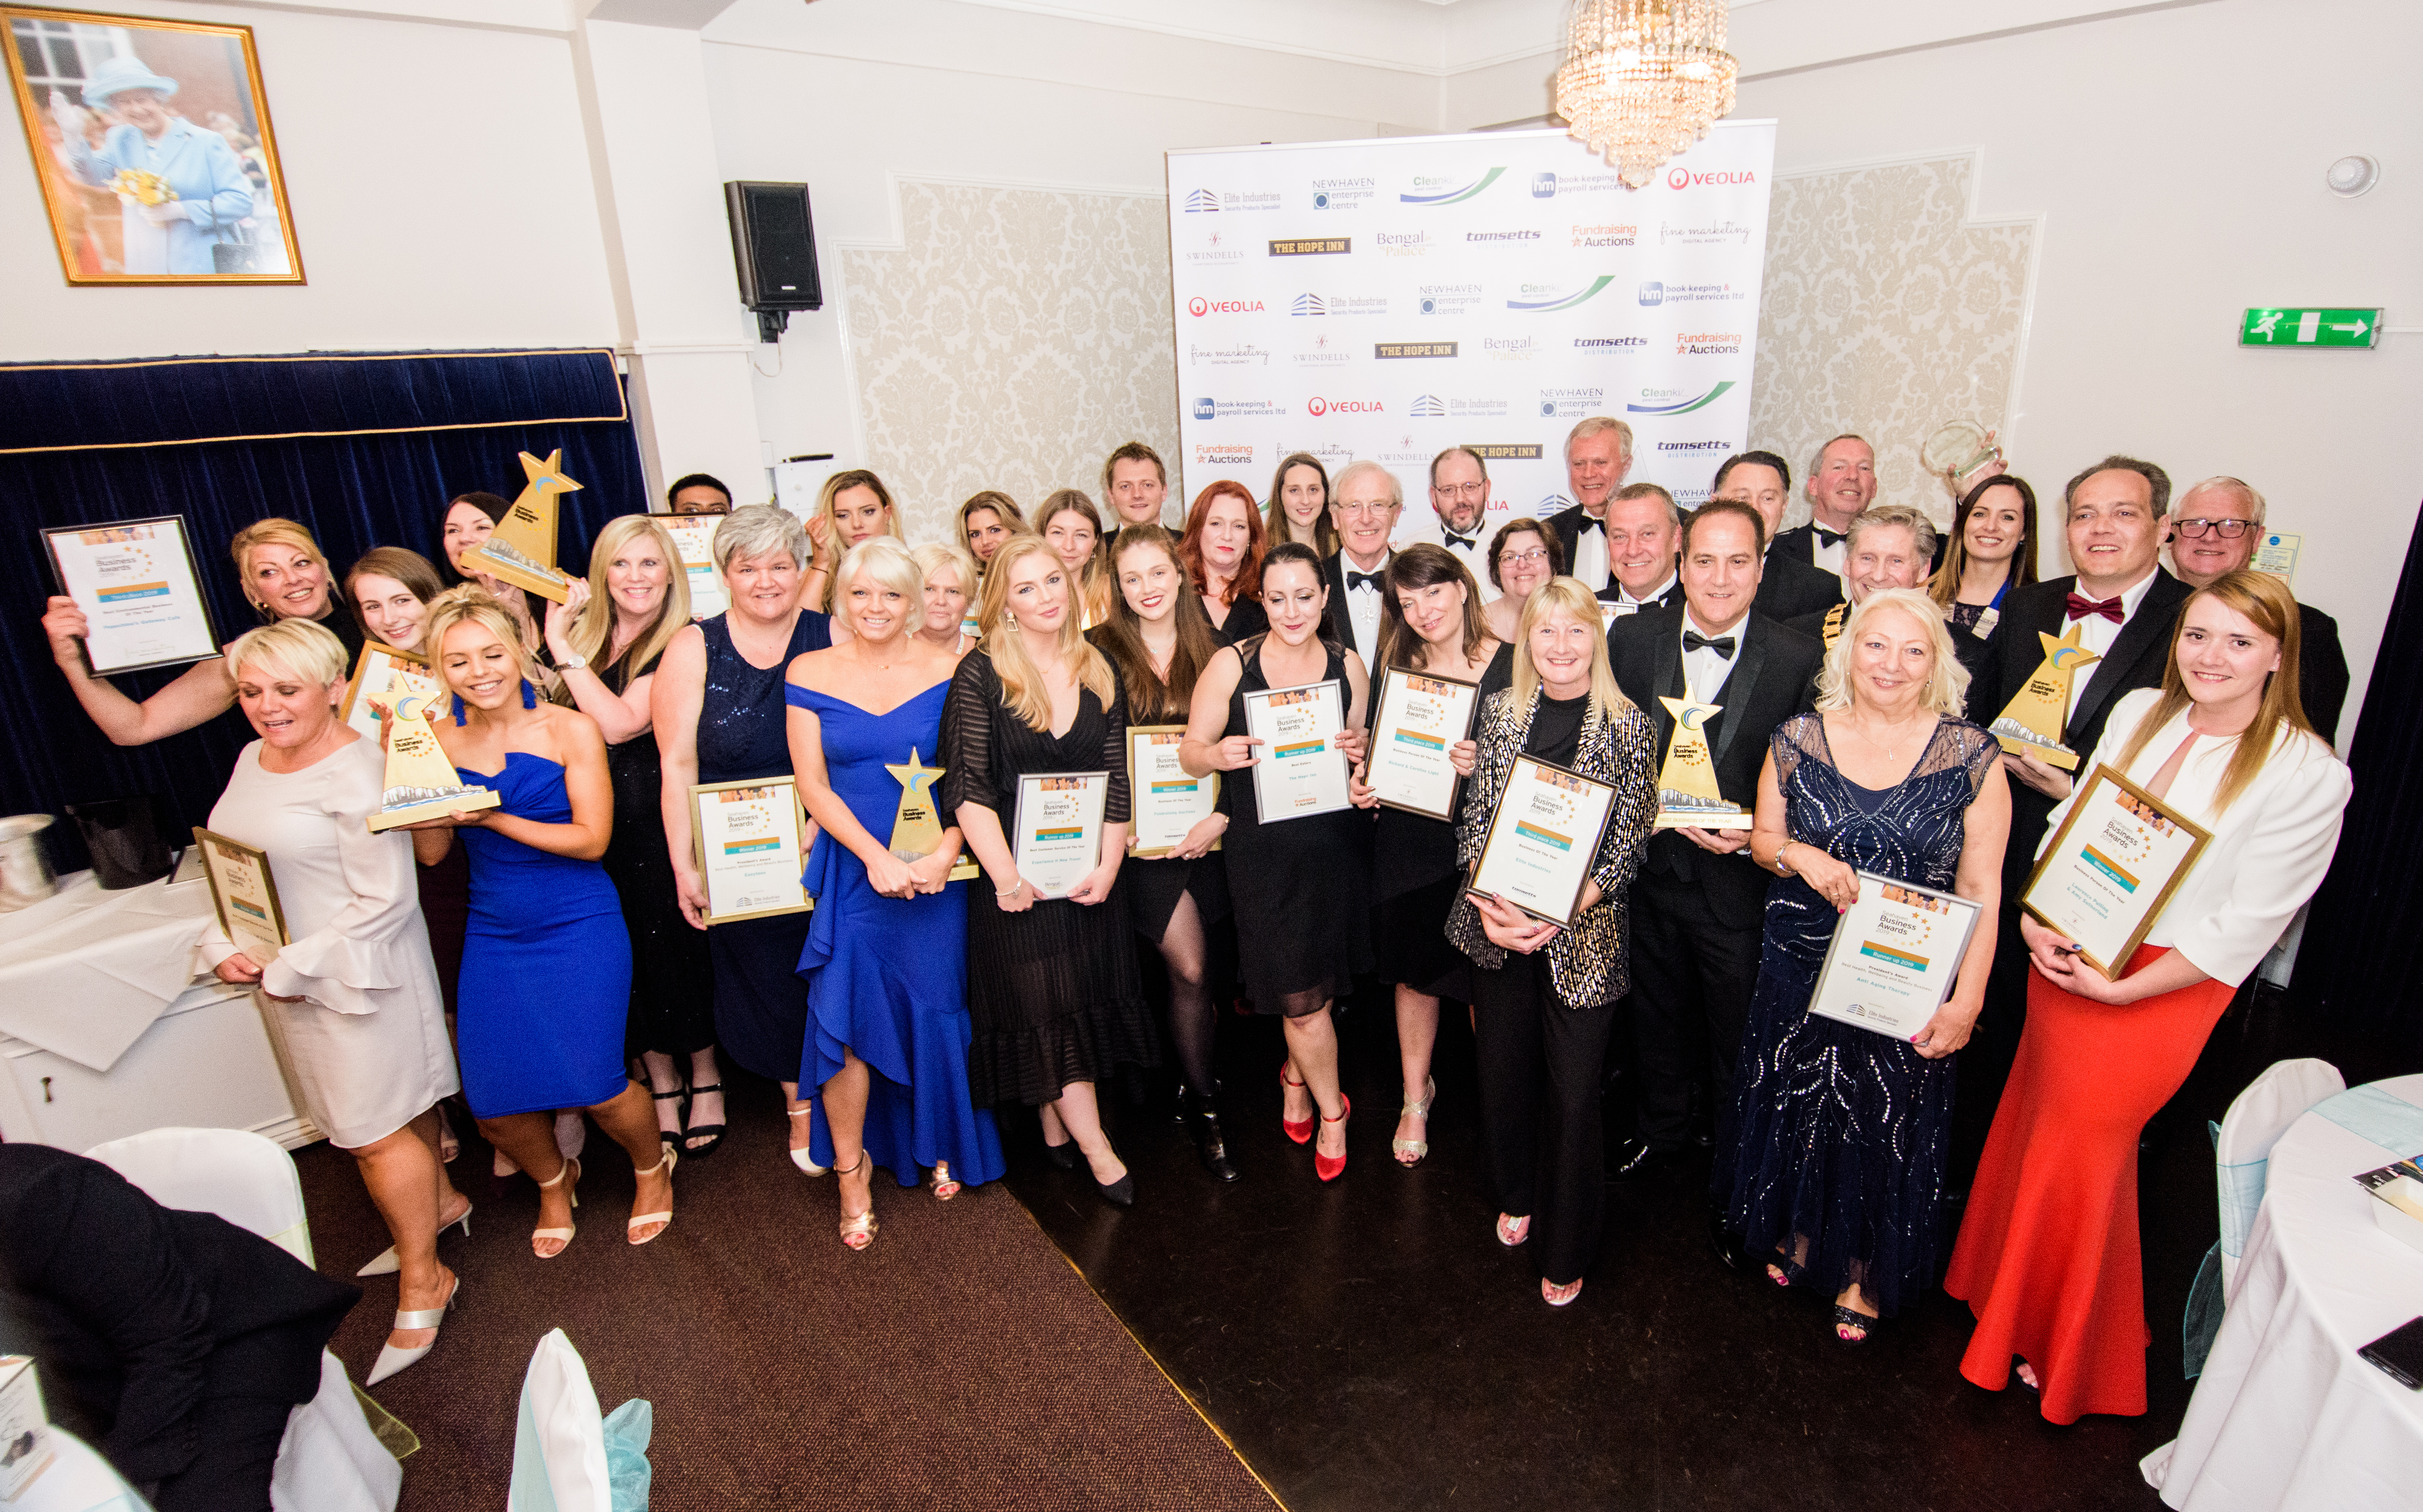 16th Seahaven Business Awards 2019